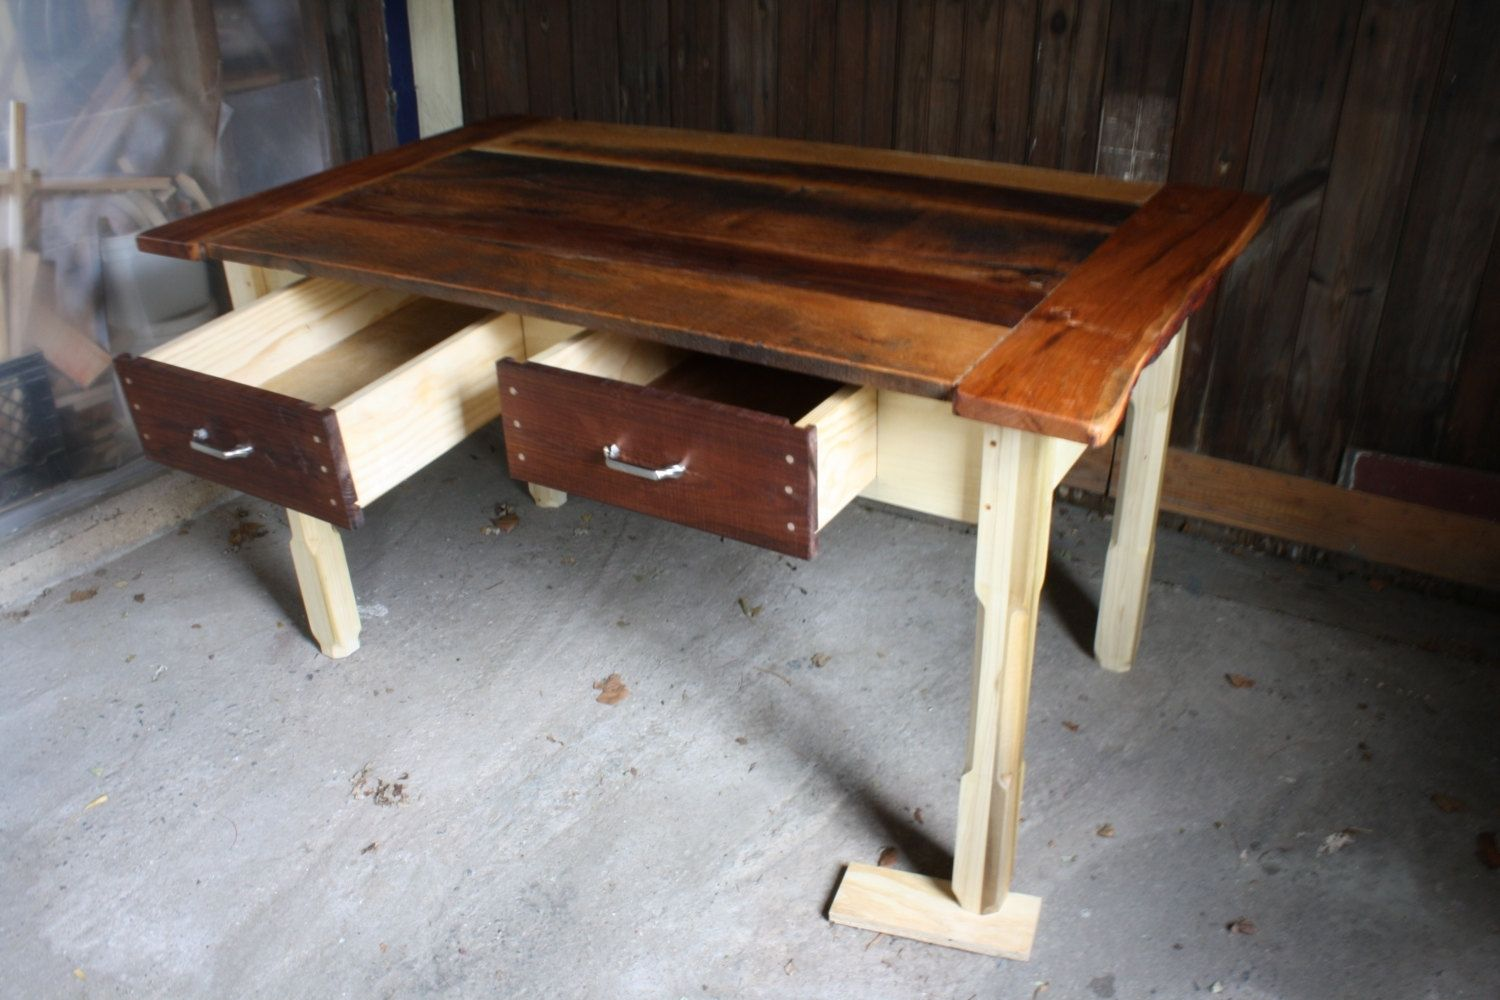 Reclaimed Wood Table ~ Custom reclaimed wood kitchen table by honeybadger